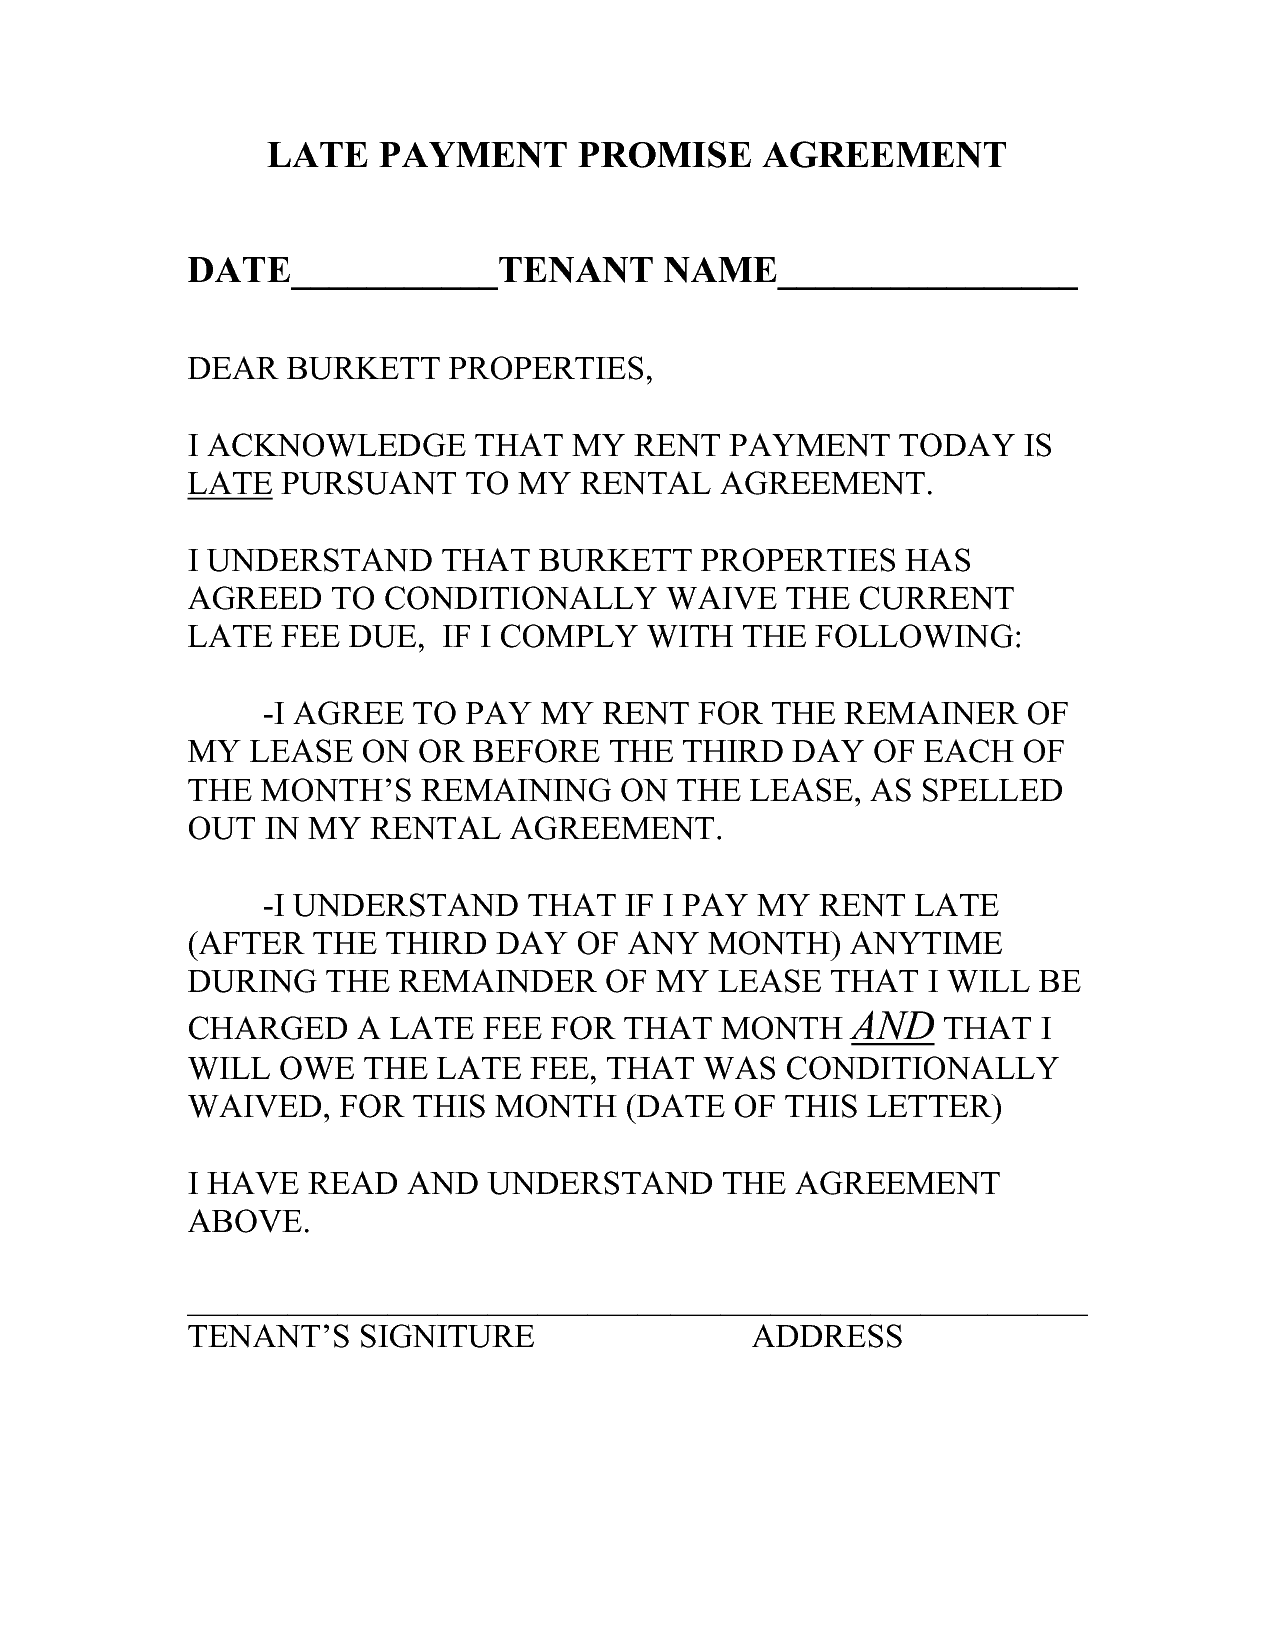 17 Best images about landlord documents on Pinterest | Real estate ...